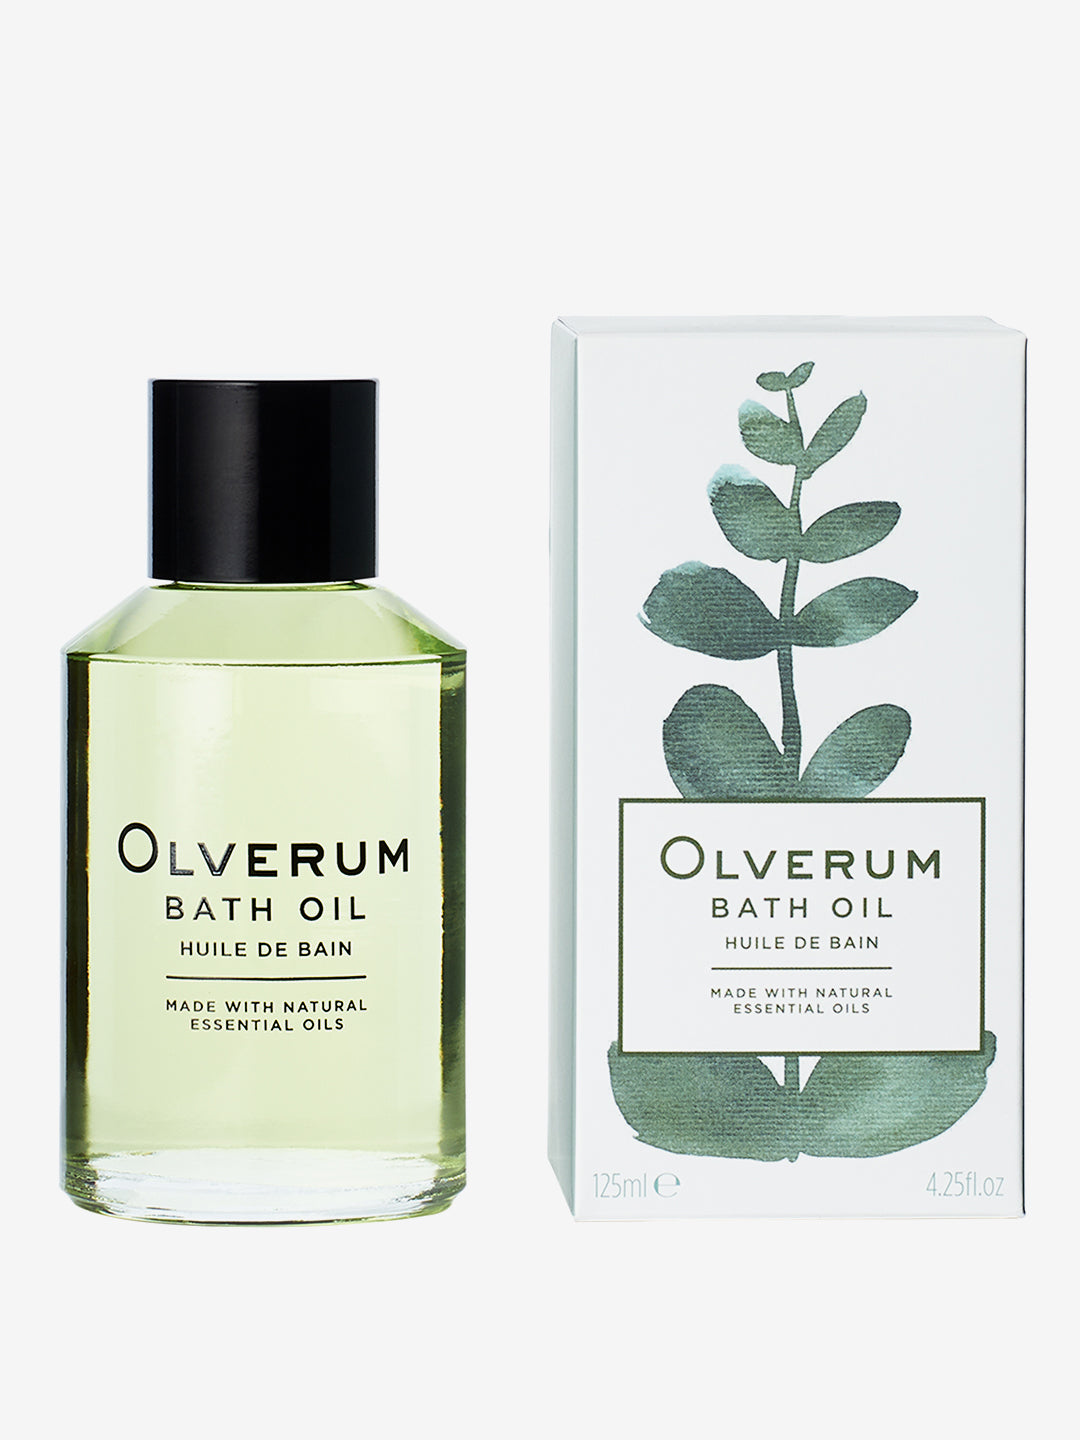 Olverum Bath Oil - 125ml